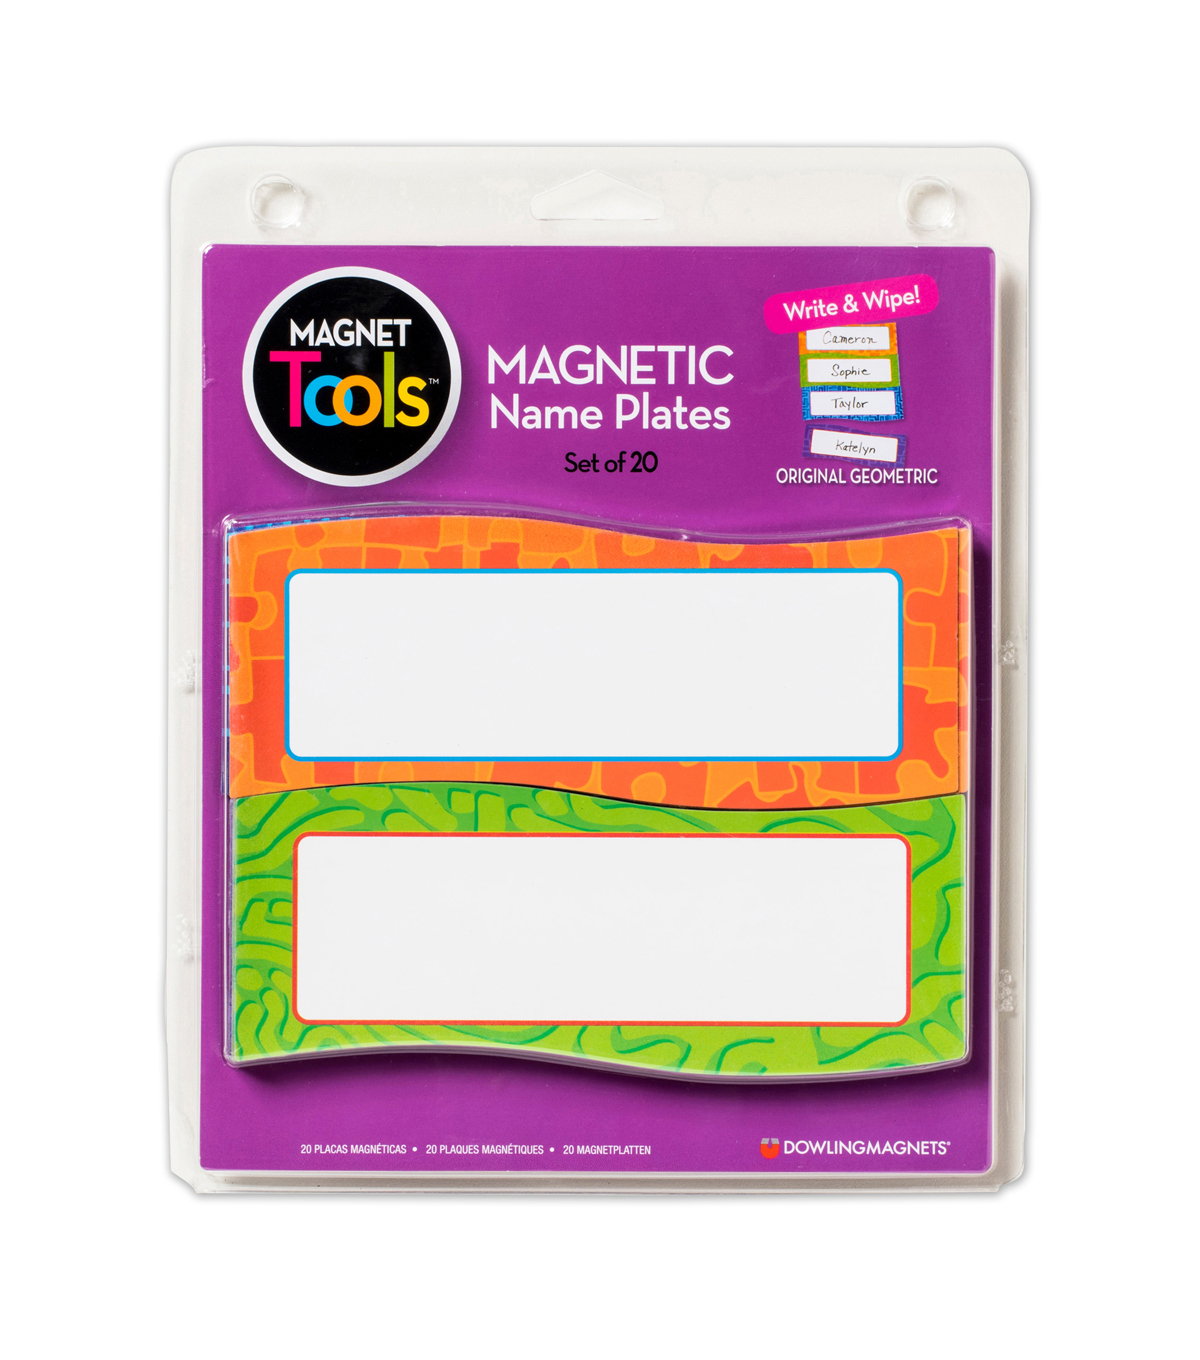 Dowling Magnets Magnetic Name Plates 20 Per Pk, 2 pks